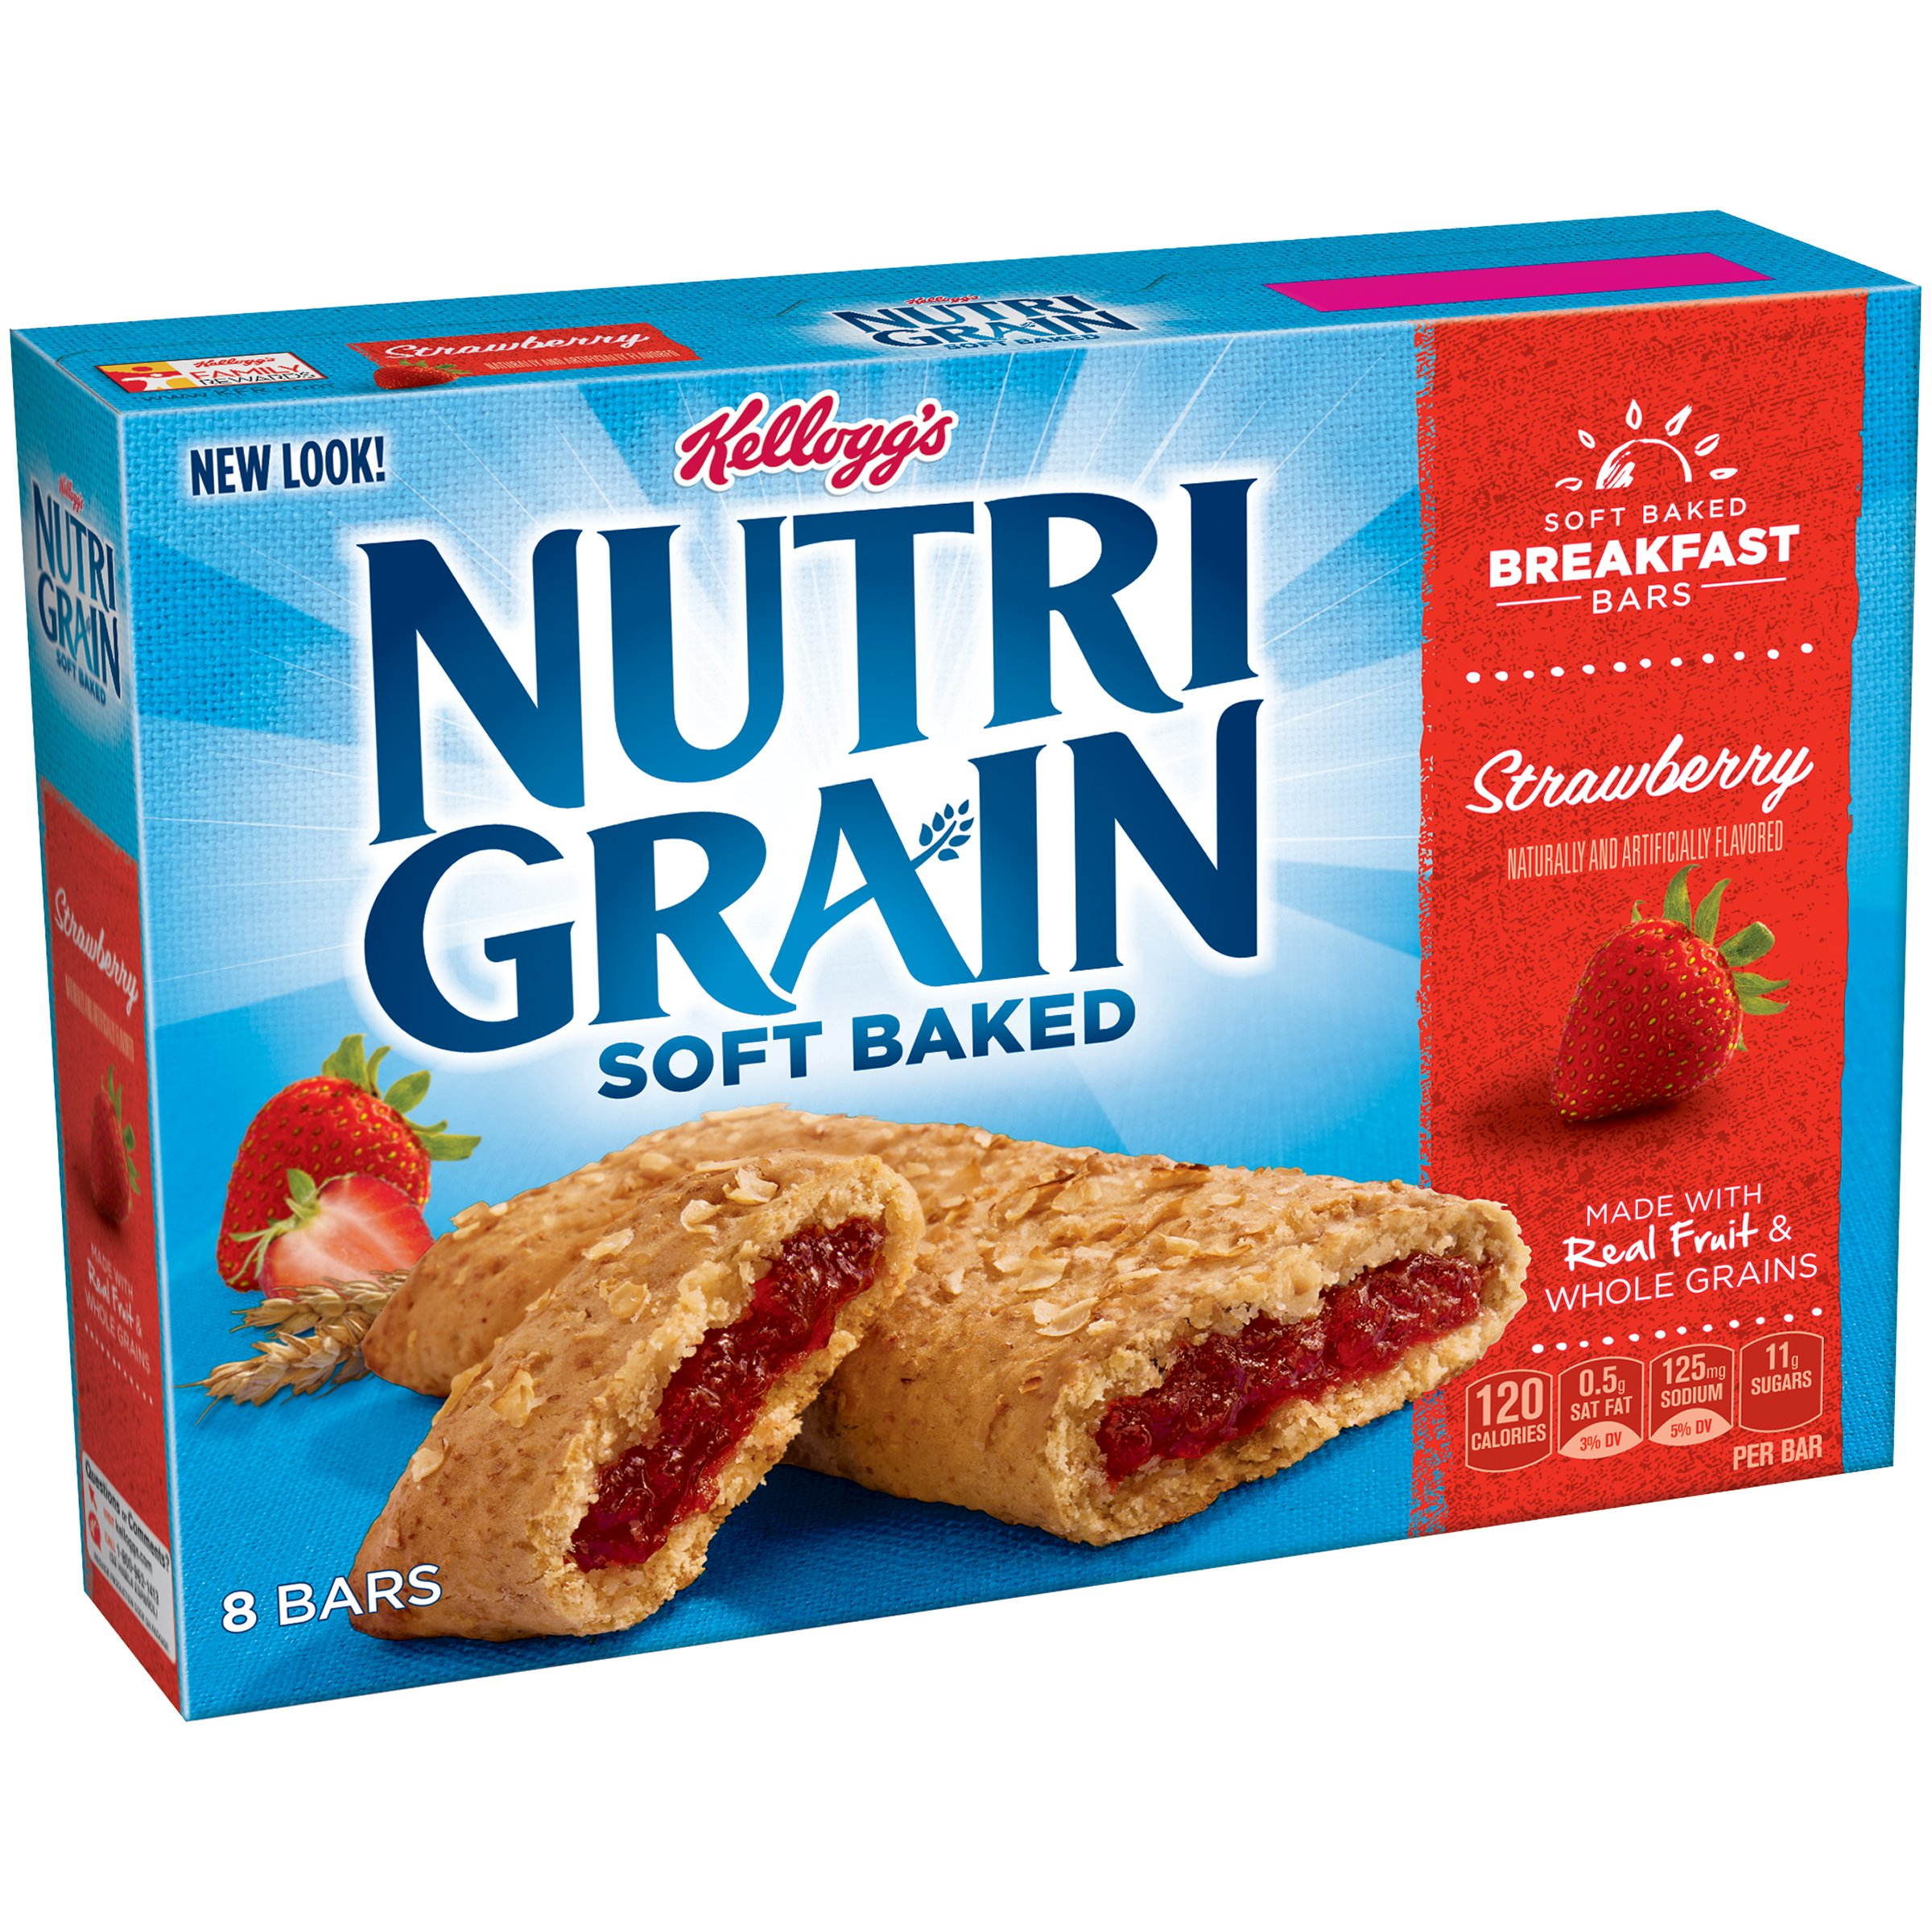 Kellogg's Nutri-Grain Cereal Bars (Strawberry, 8-Count Bars, 10.4 oz, Pack of 6) by Nutri-Grain